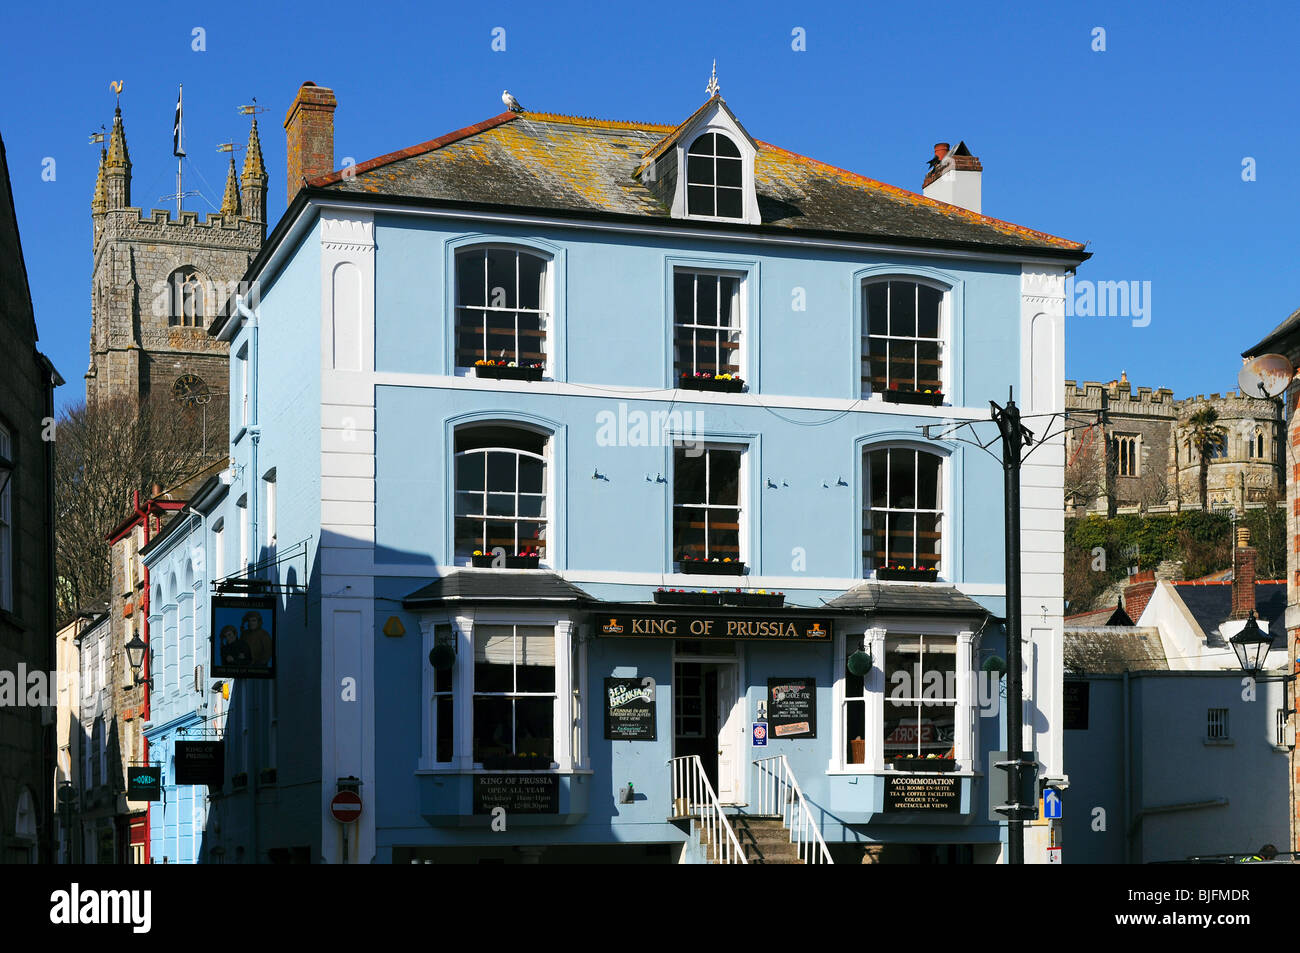 the ' king of prussia ' pub at fowey in cornwall, uk - Stock Image